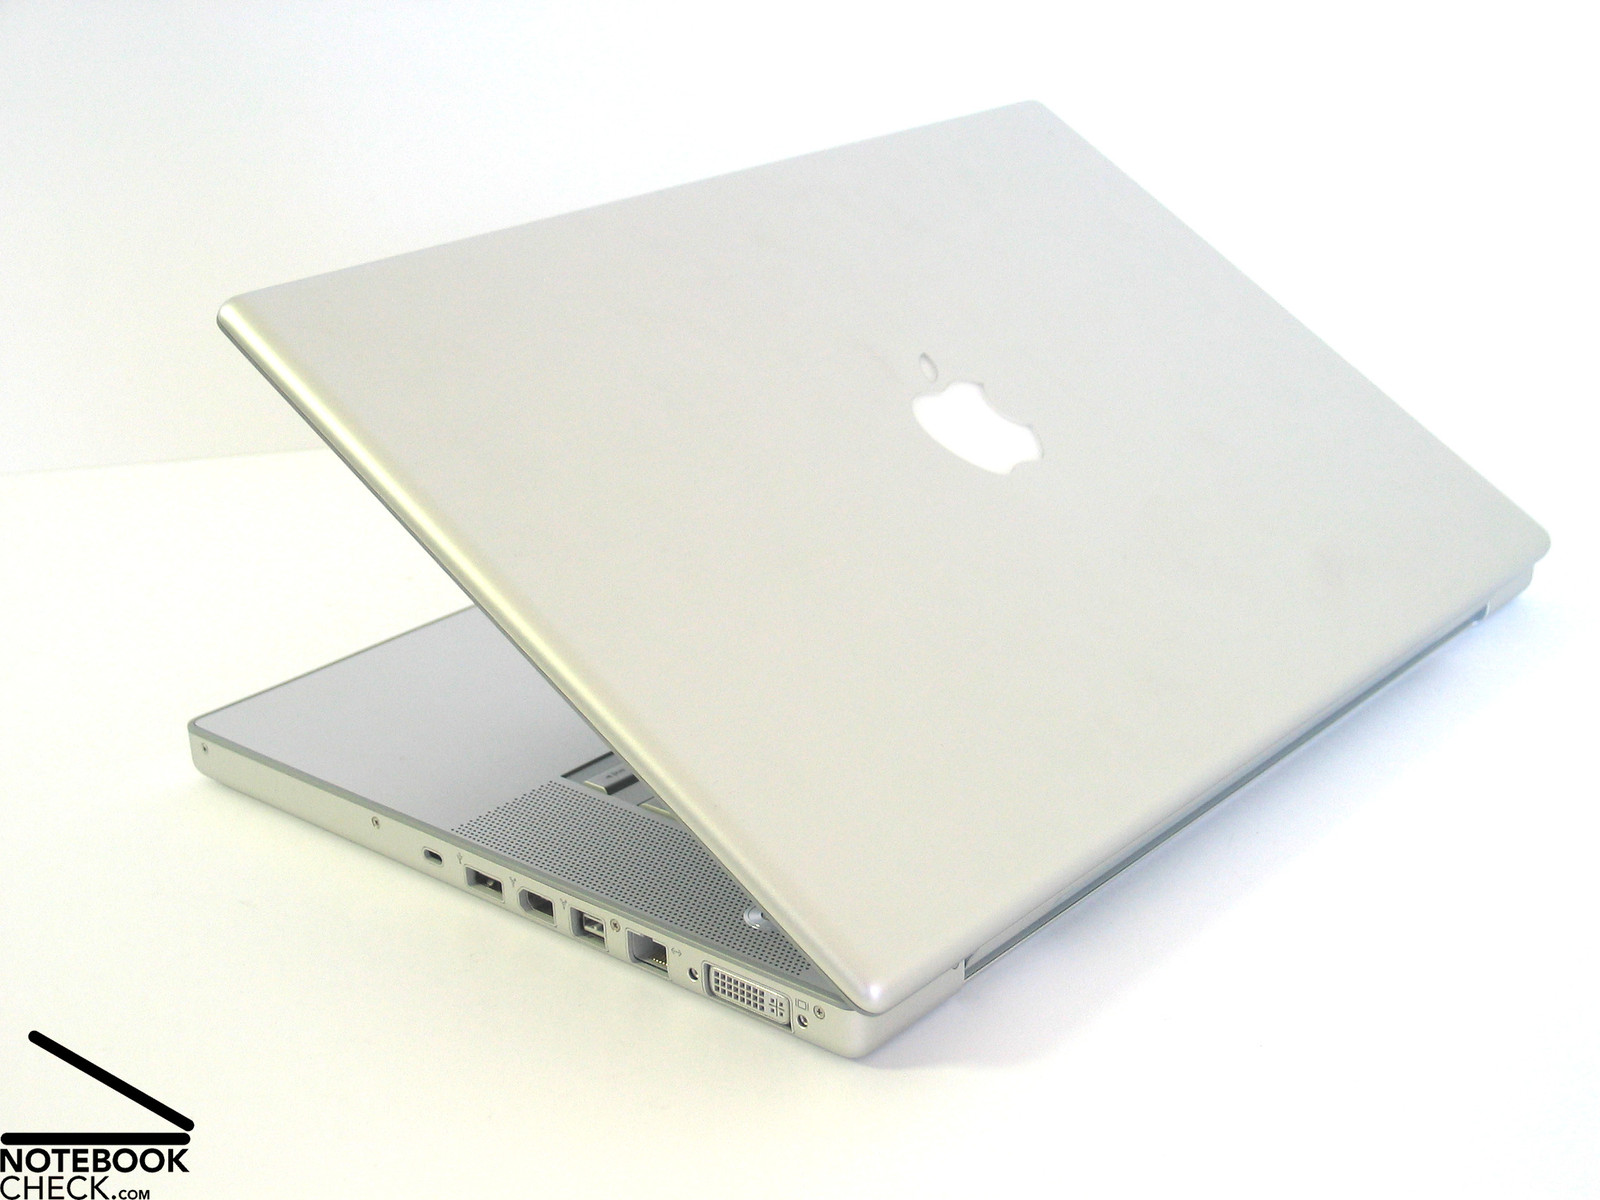 Reviewed: Apple MacBook Pro 2.2 GHz (Santa Rosa)